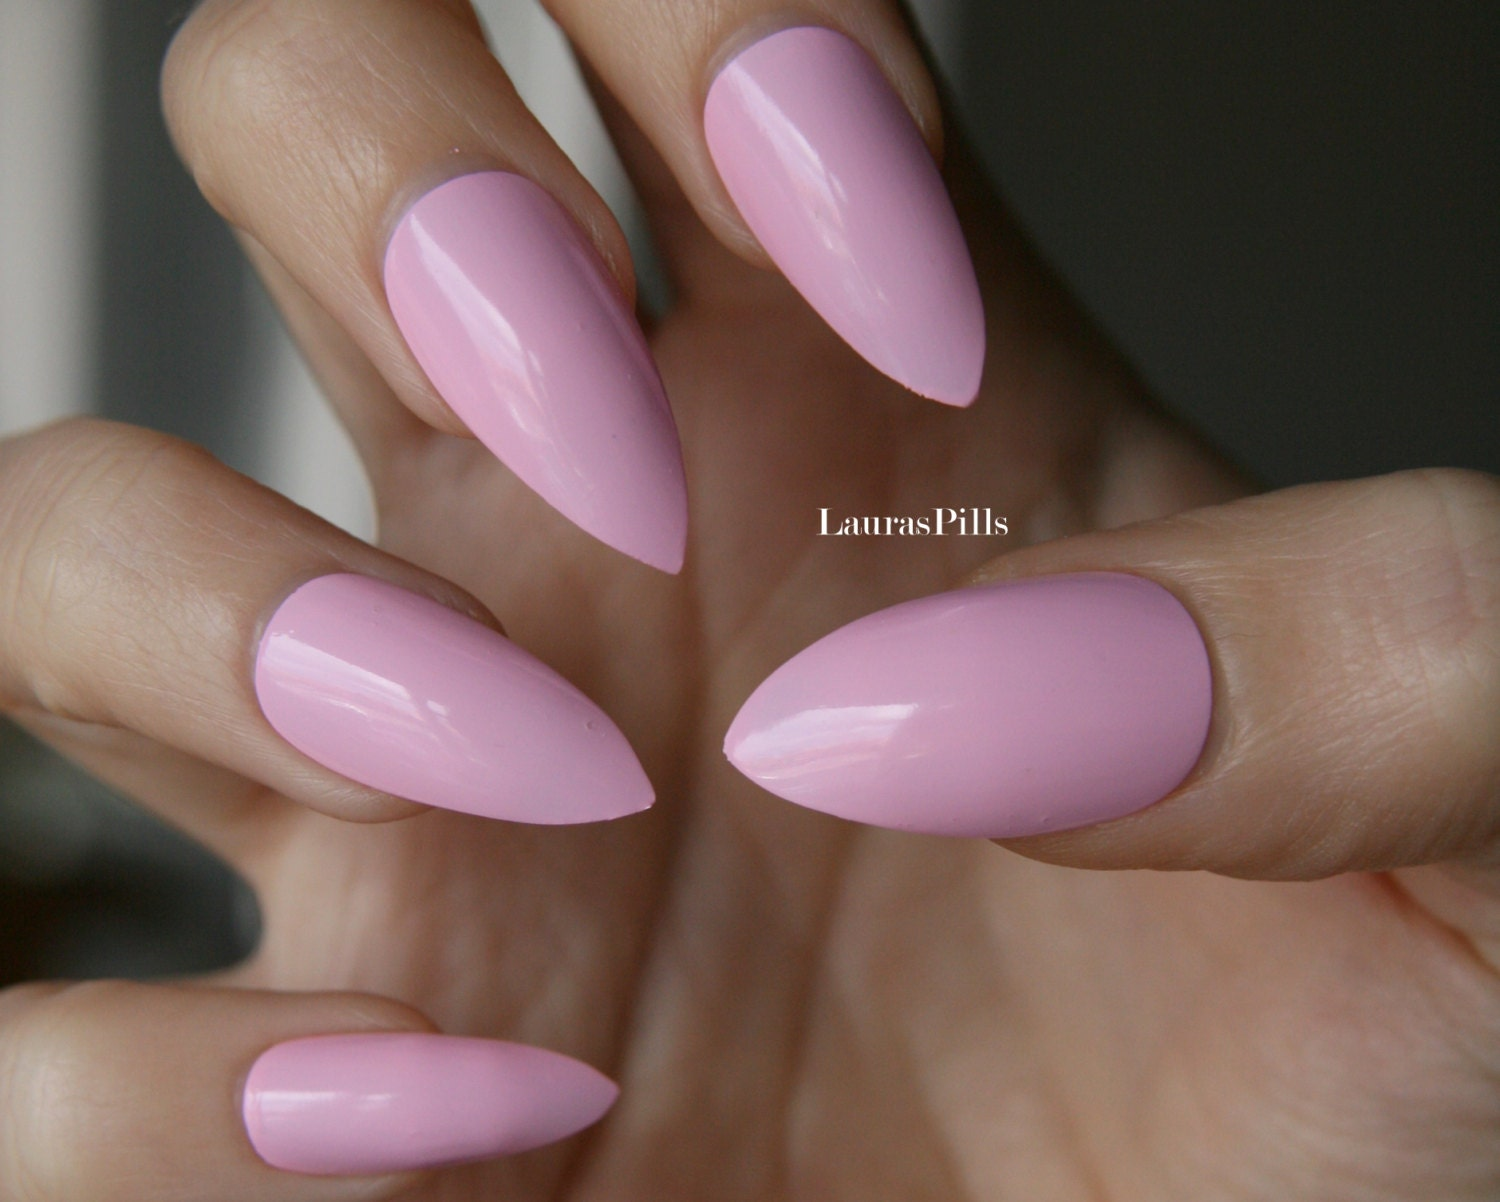 Pink stiletto nails Matt or glossy. Set of hand painted nails